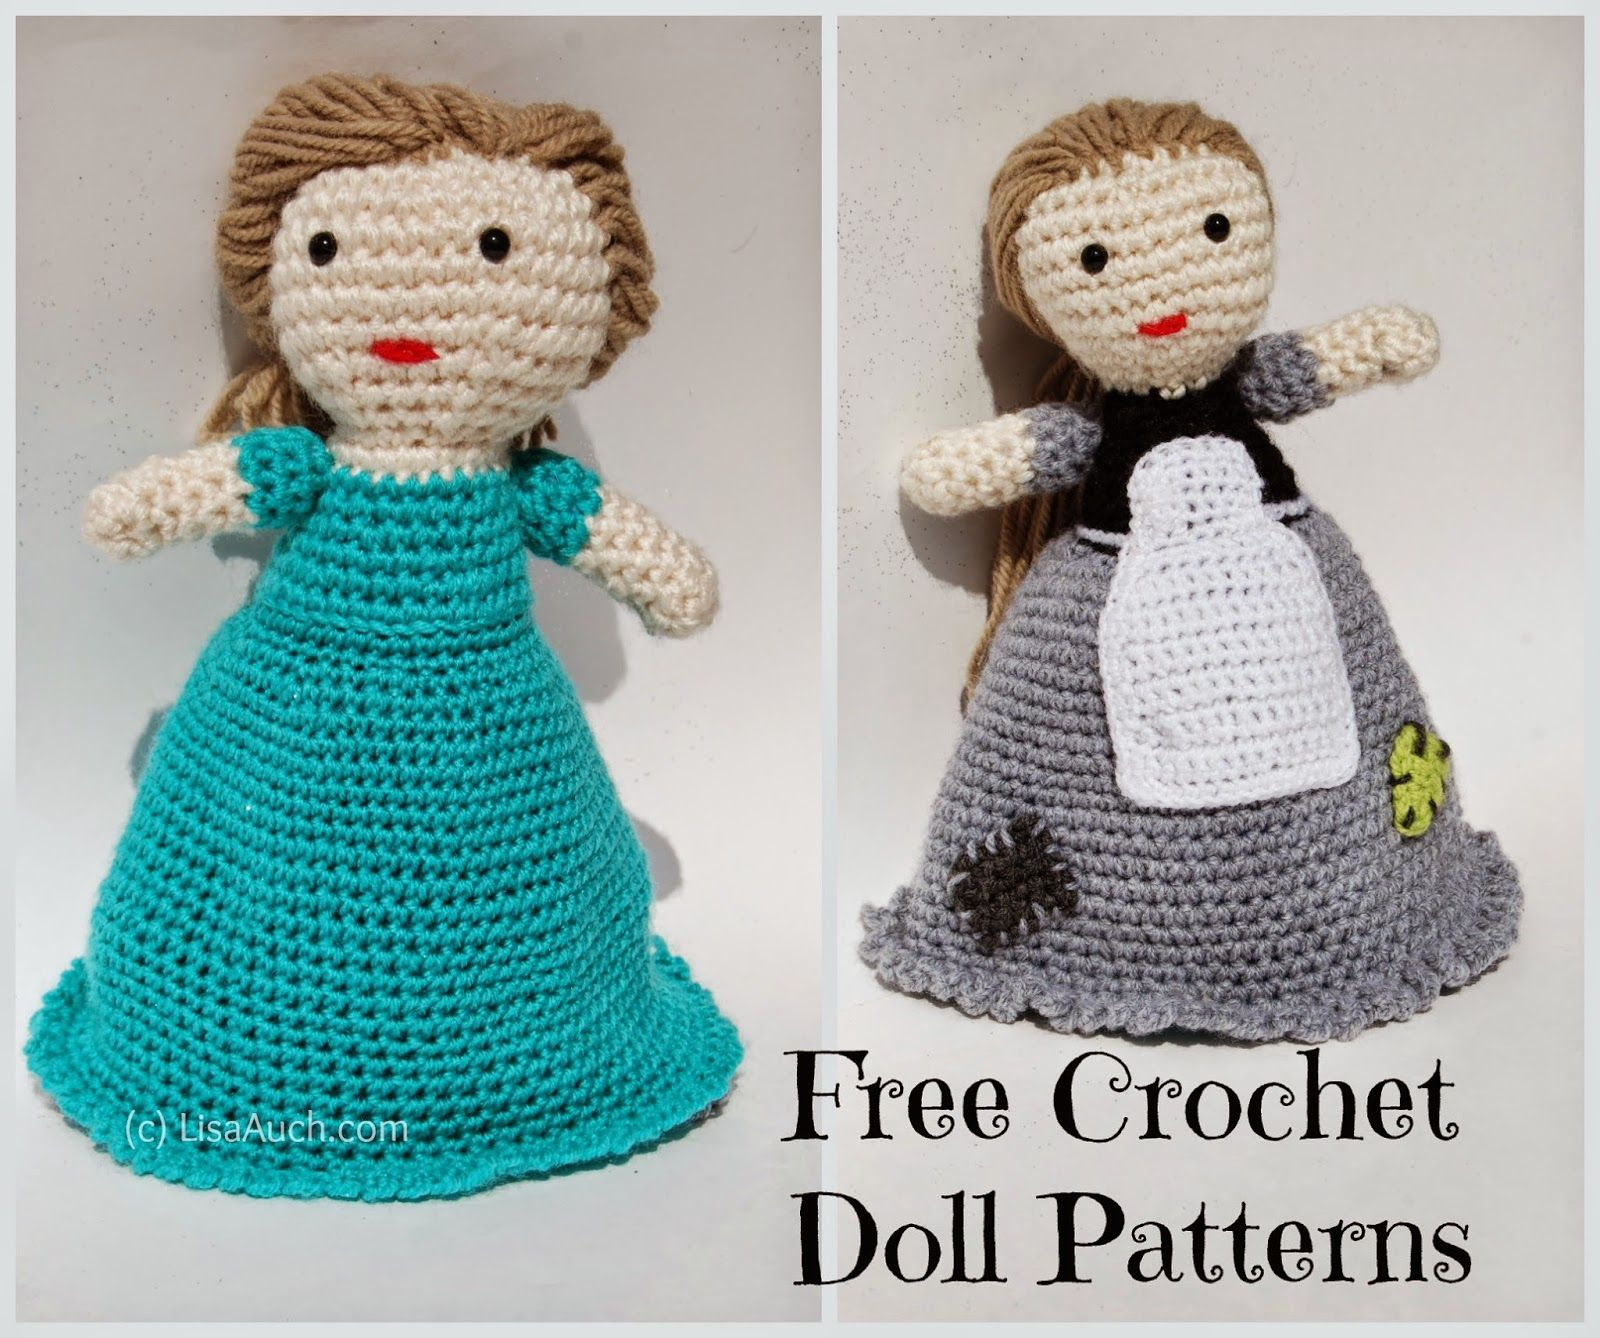 Crochet Doll Pattern Interesting Ideas